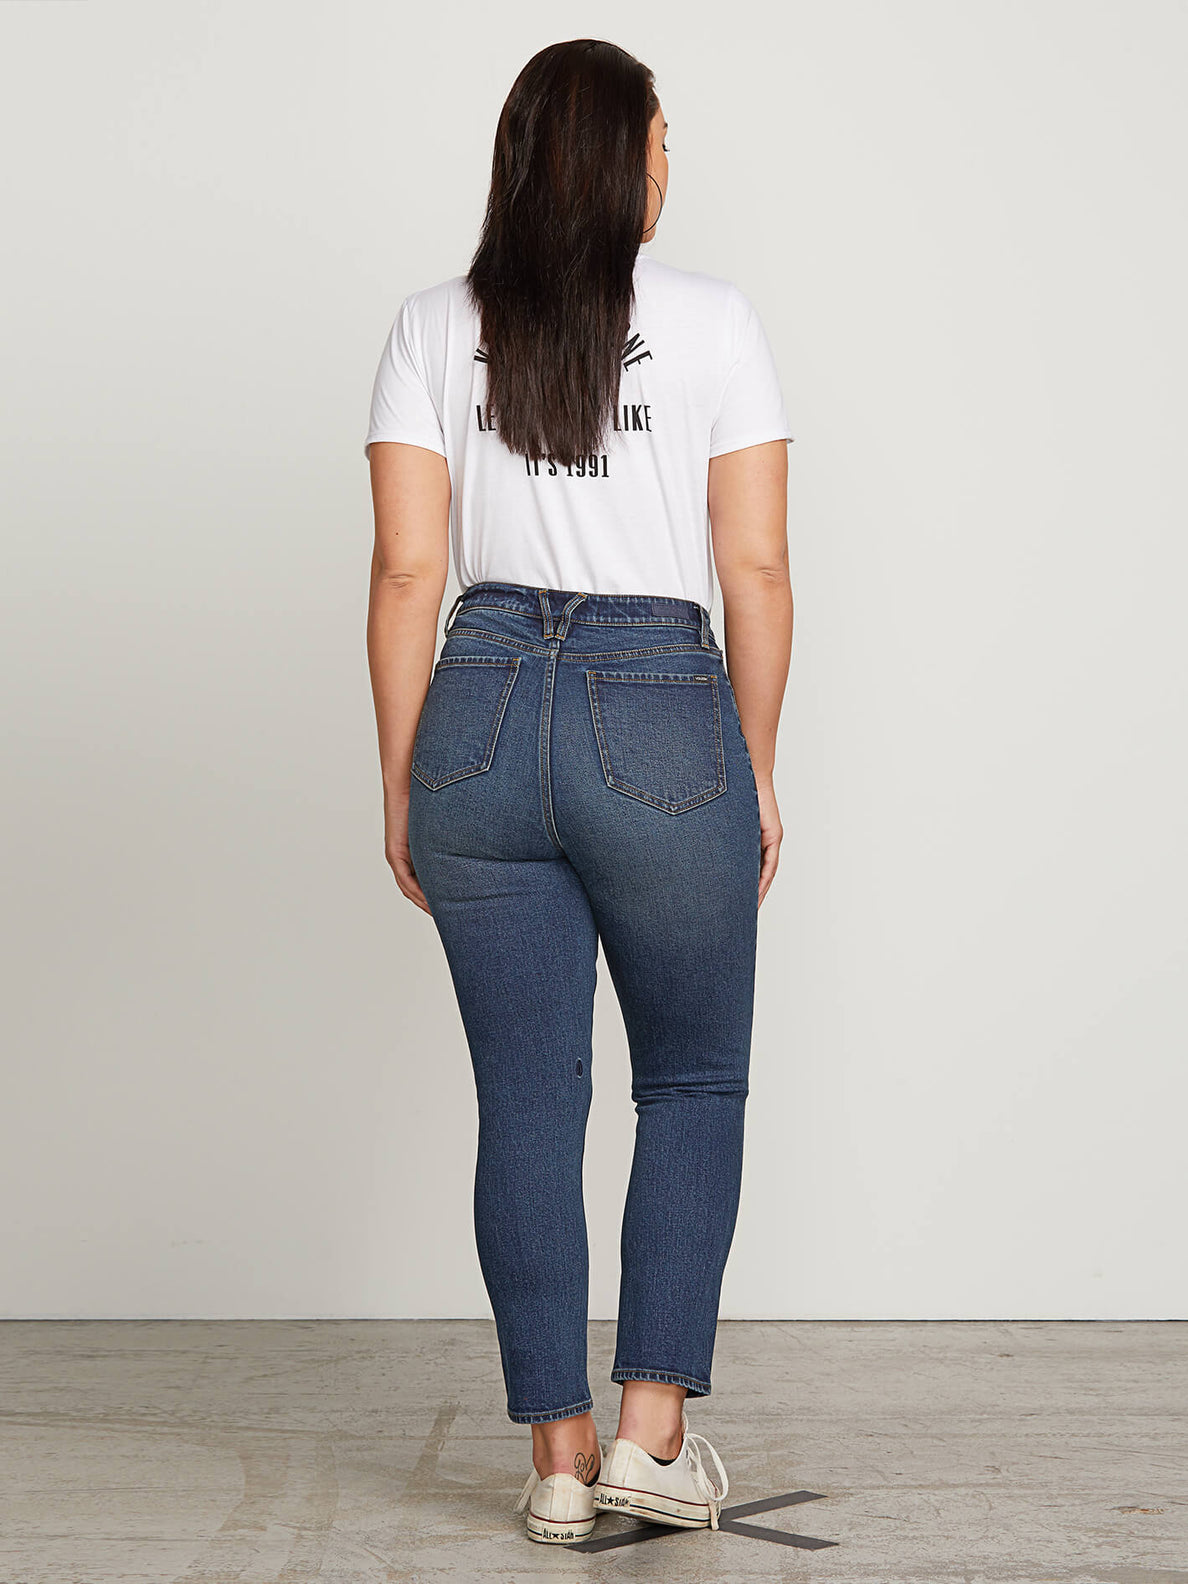 Vol Stone Jeans In Dry Vintage, Back Extended Size View